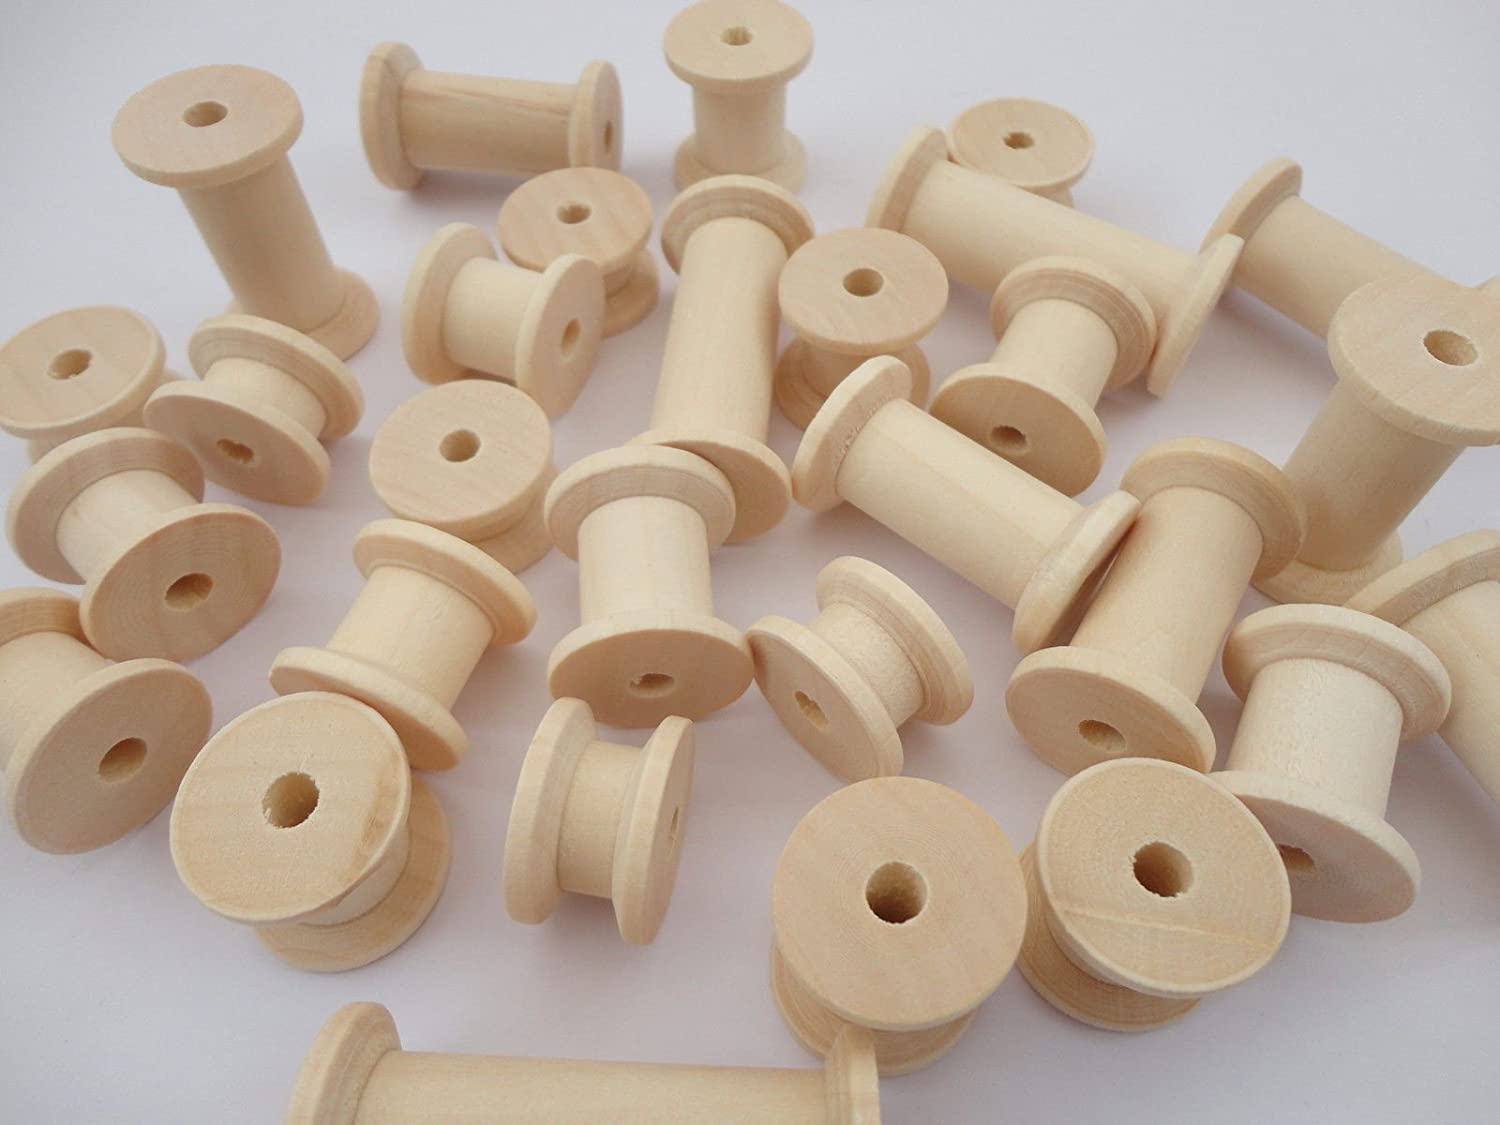 60 Natural Wooden Spools Wood Bobbins Craft Sewing Threading Puppet Toy Wheels a2bsales